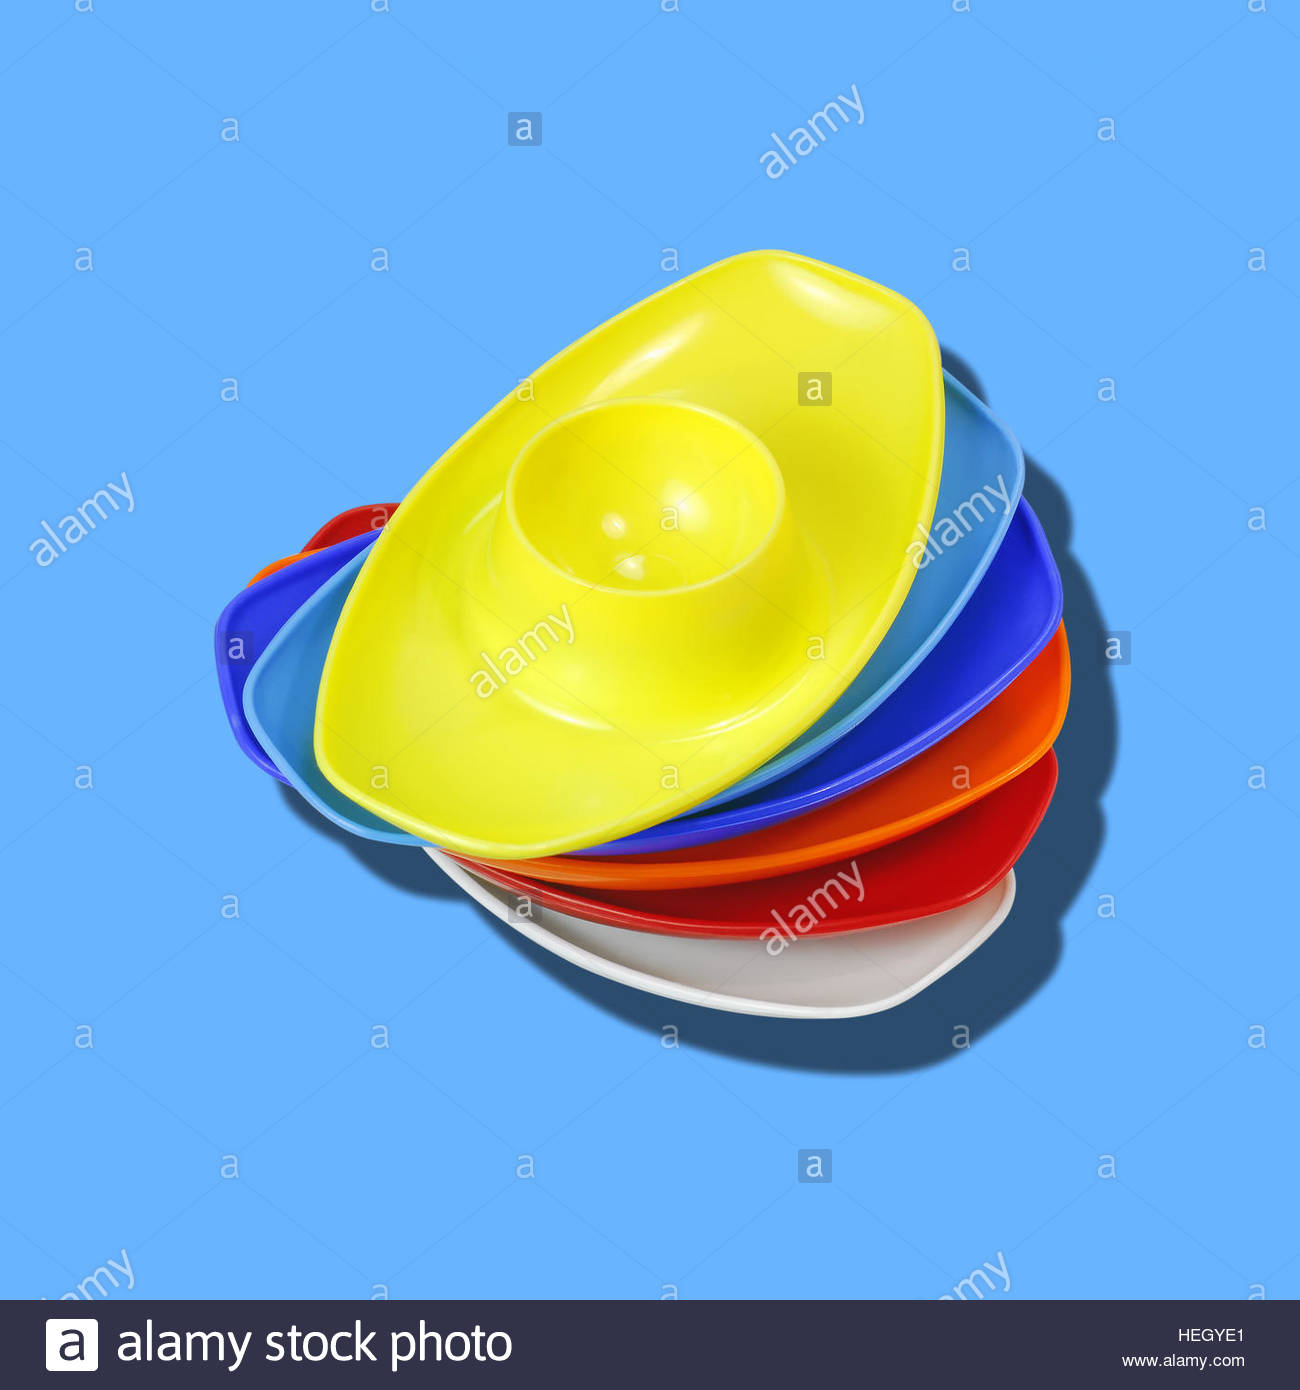 Egg Cups Plastic Vintage food holder kitsch retro isolated mid century on plain background - Stock Image